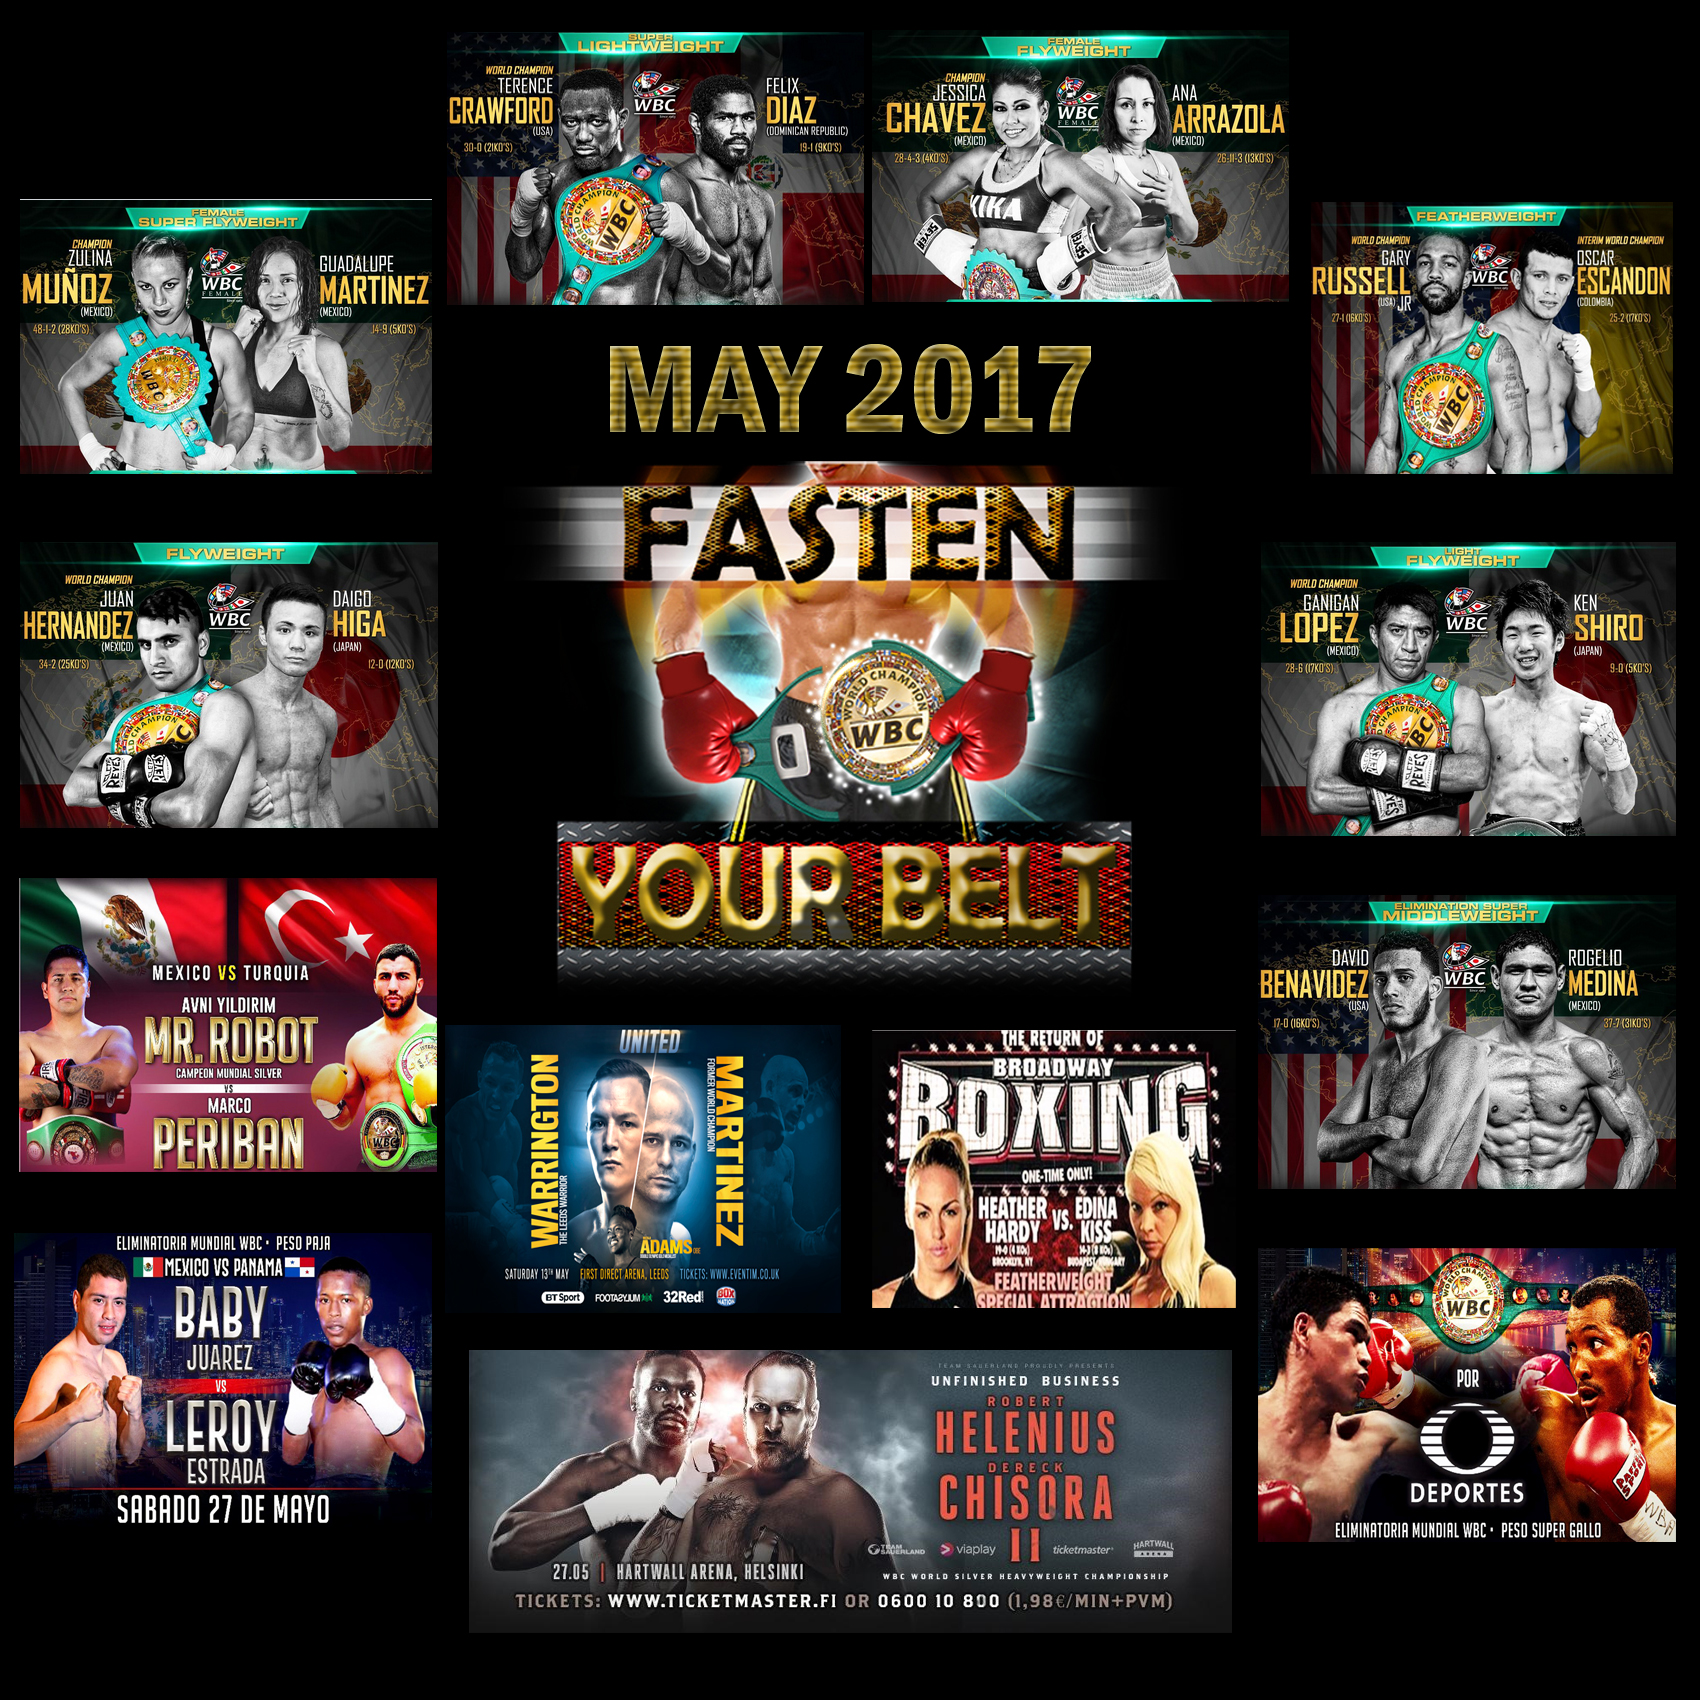 FASTEN-YOUR-BELT-MAY-2017